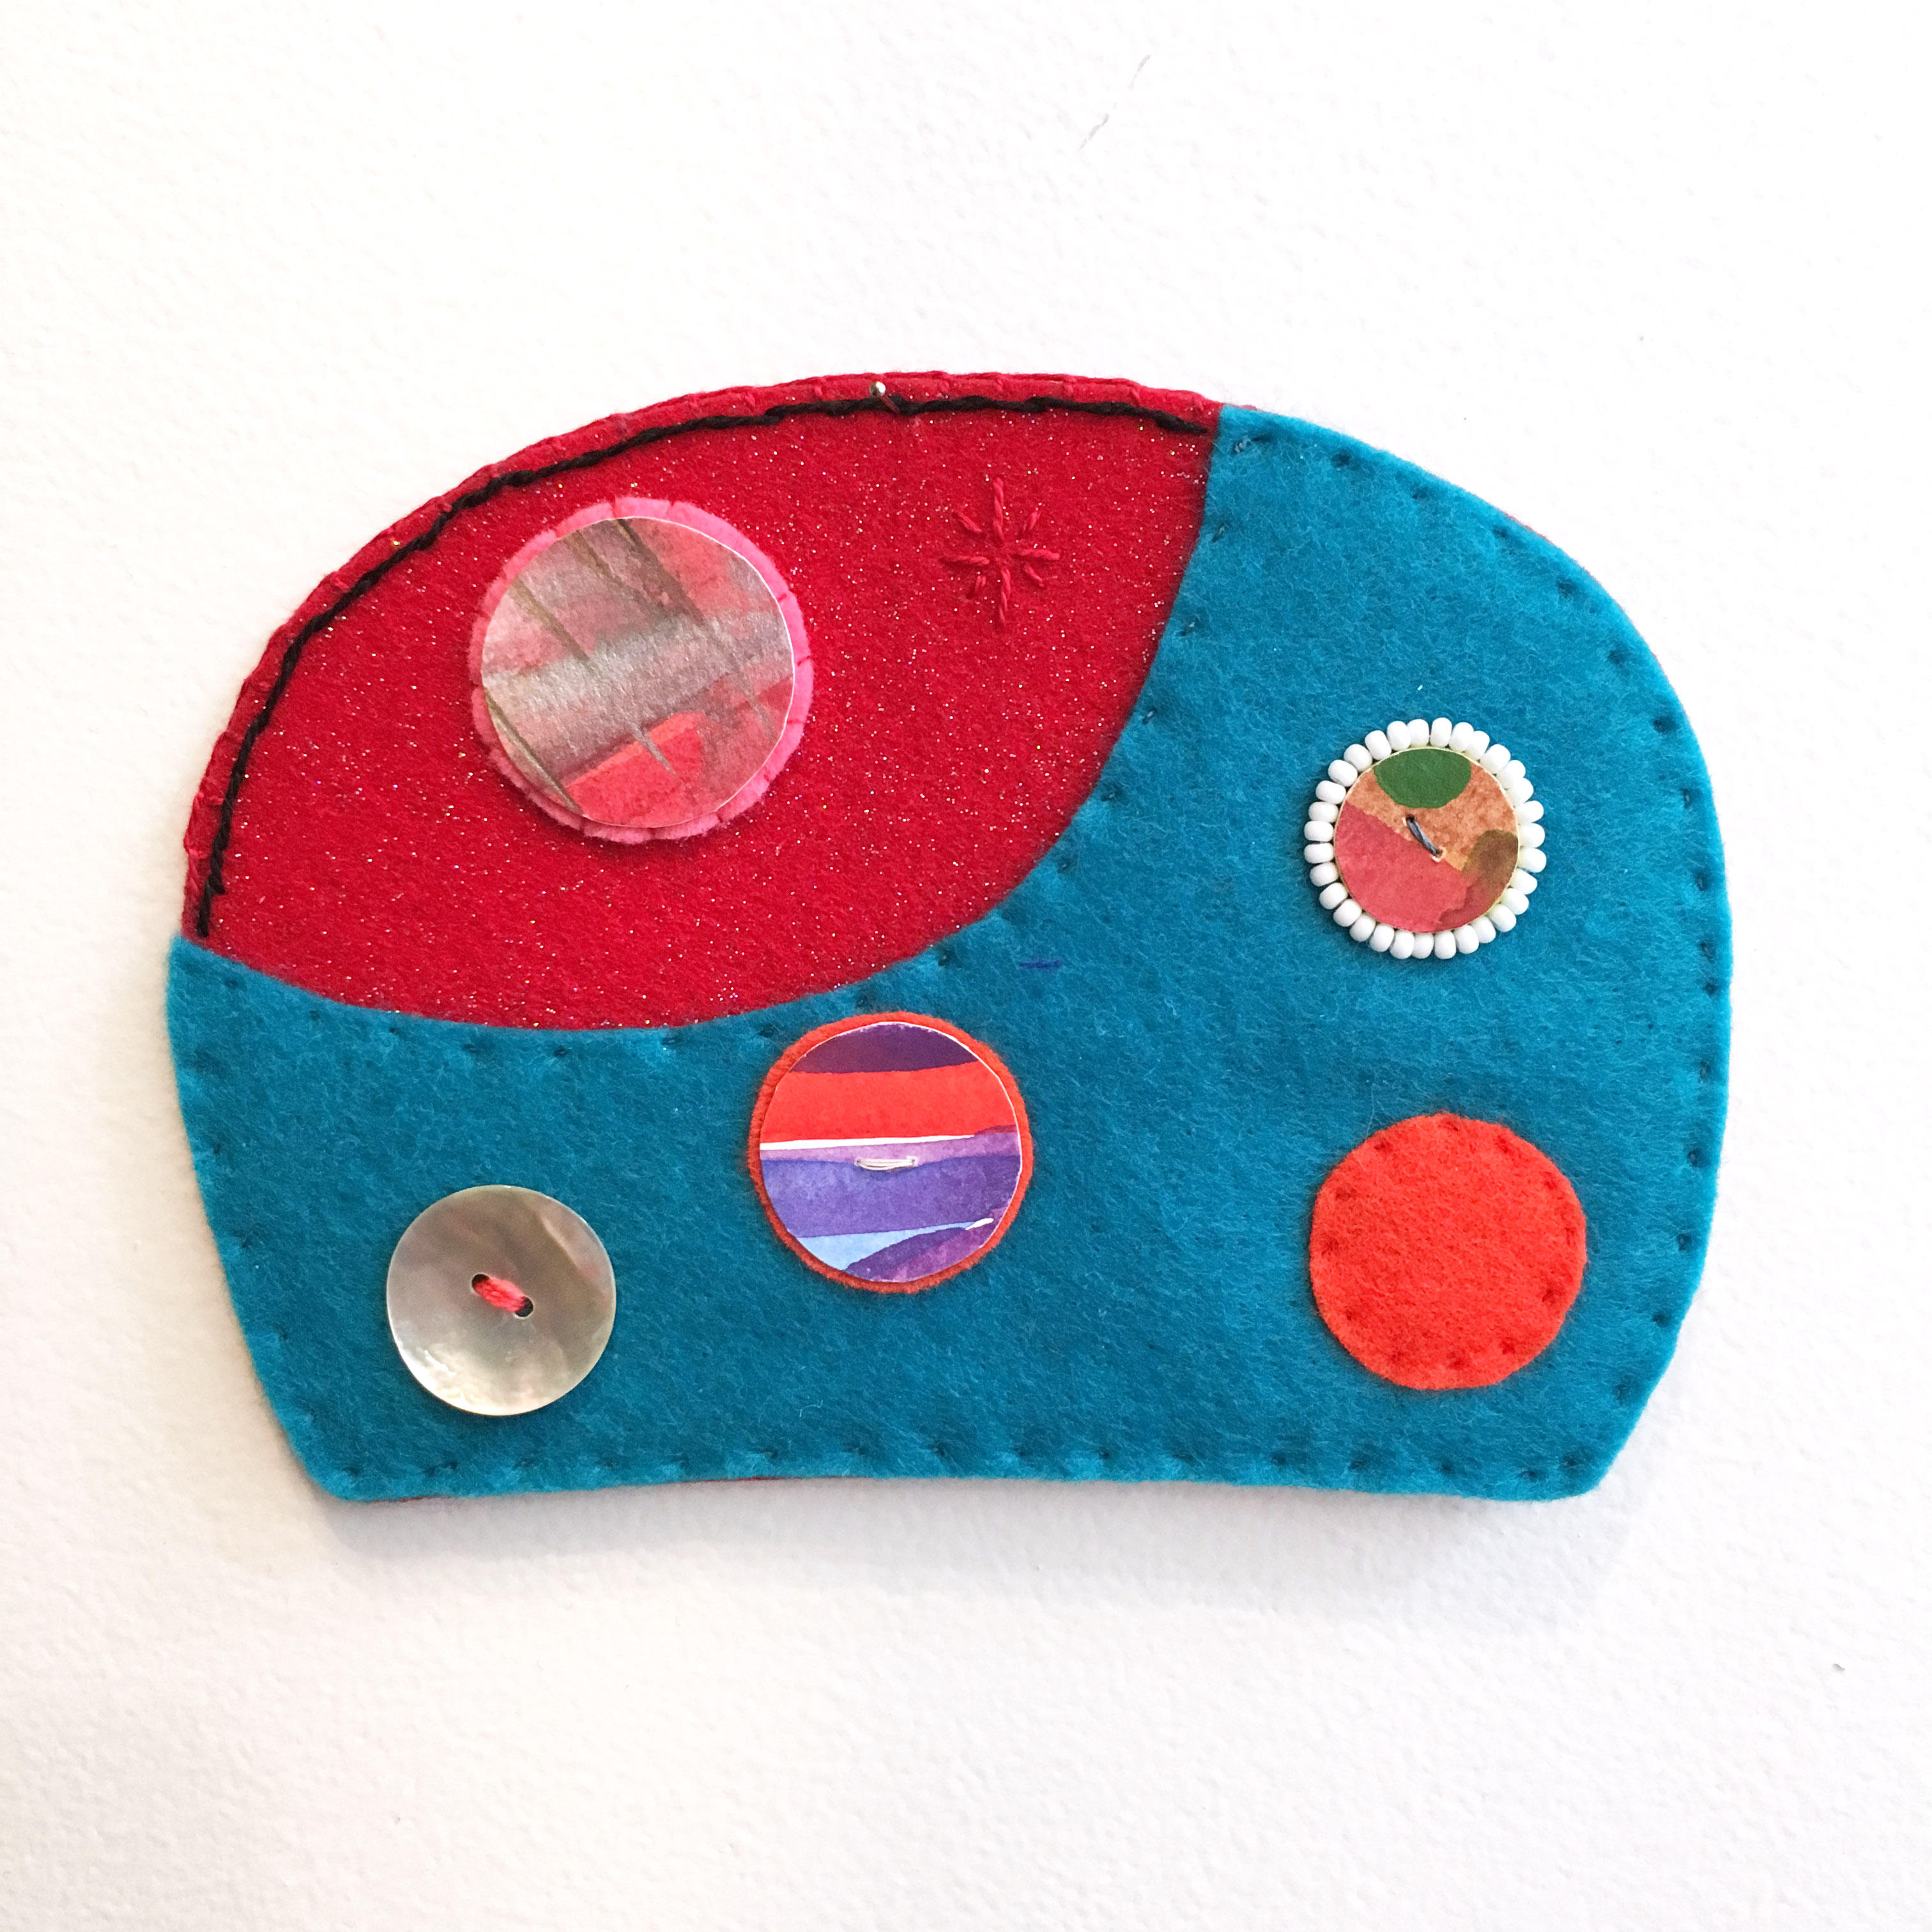 Ovoid Traces, Charlene Vickers (Anishinabe), Watercolour, paper, shell buttons, glass beads on felt with embroidery edges, $80